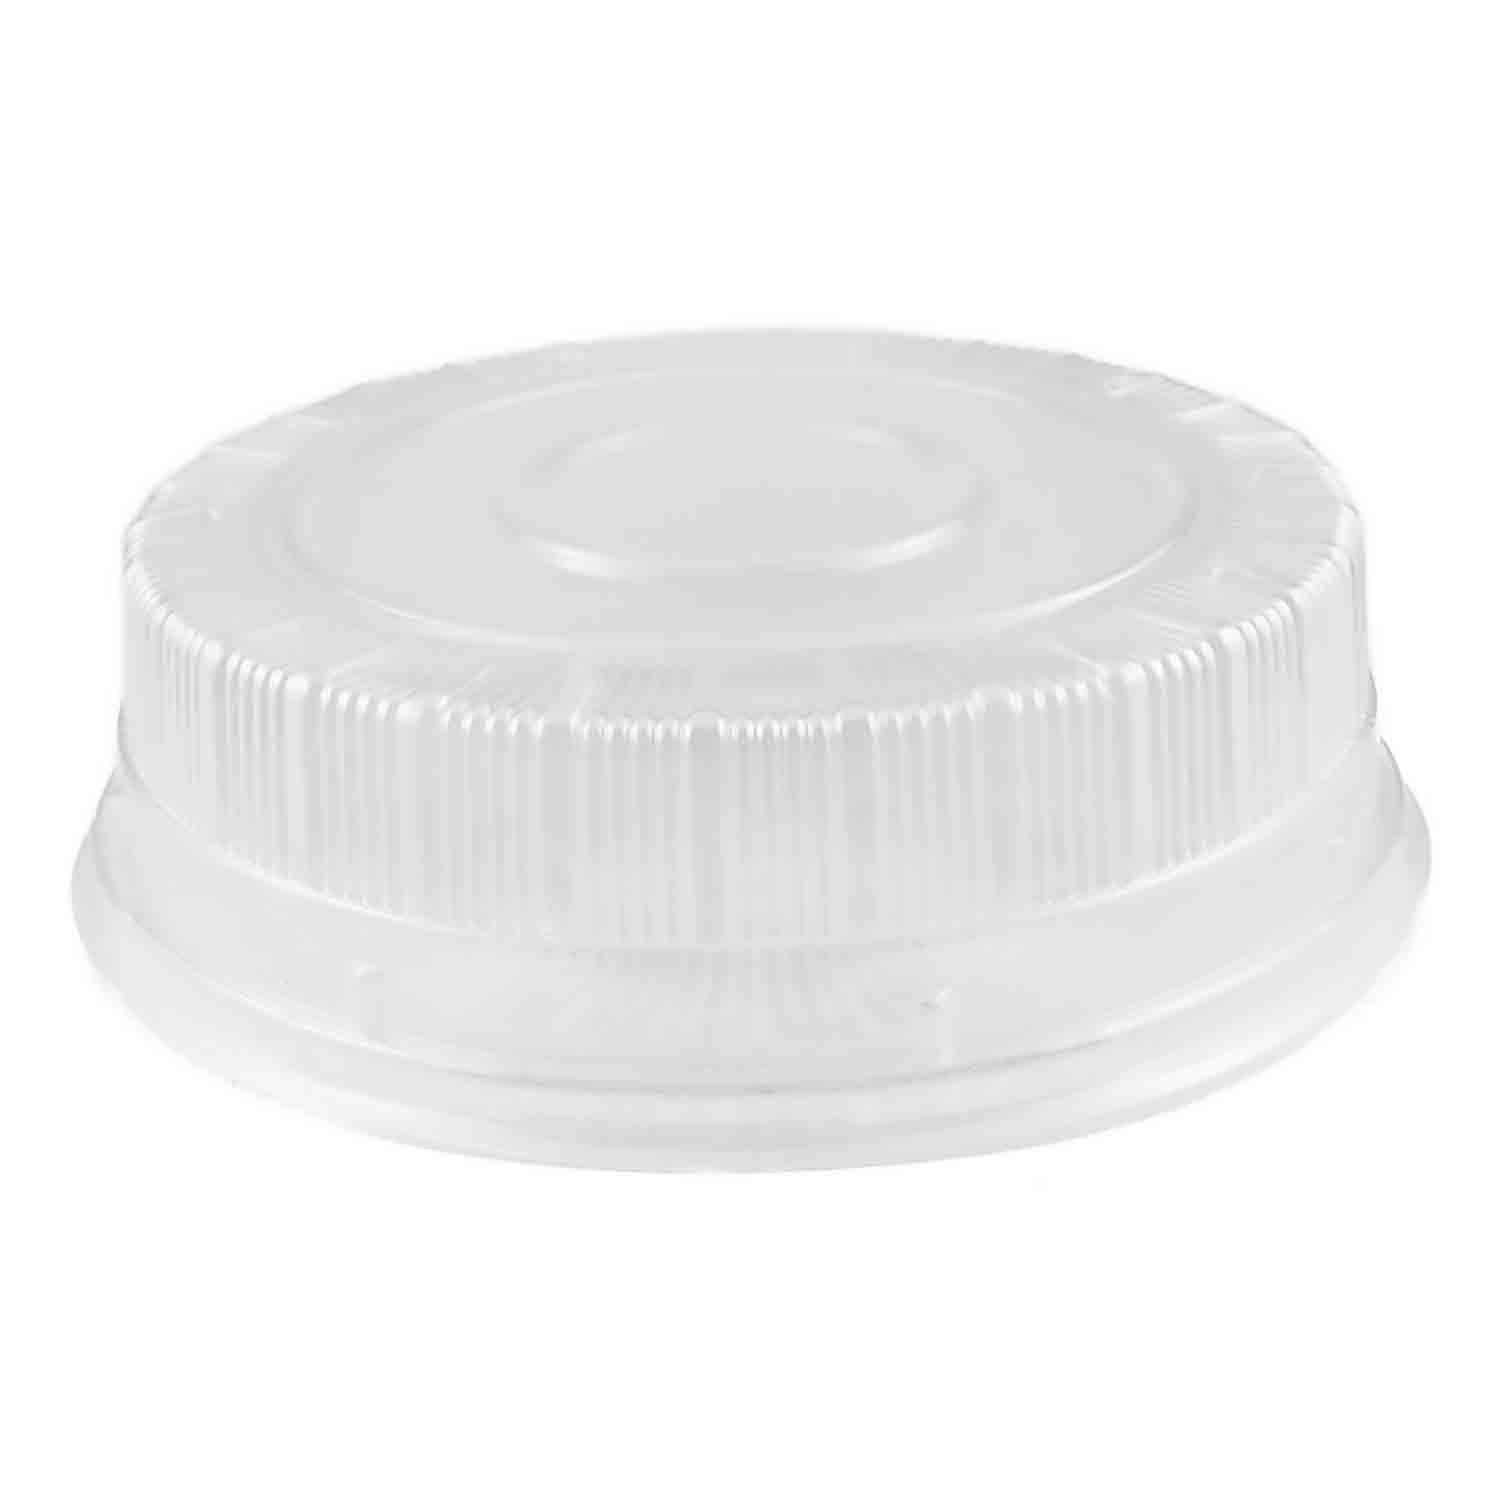 "12"" Clear Platter Dome"